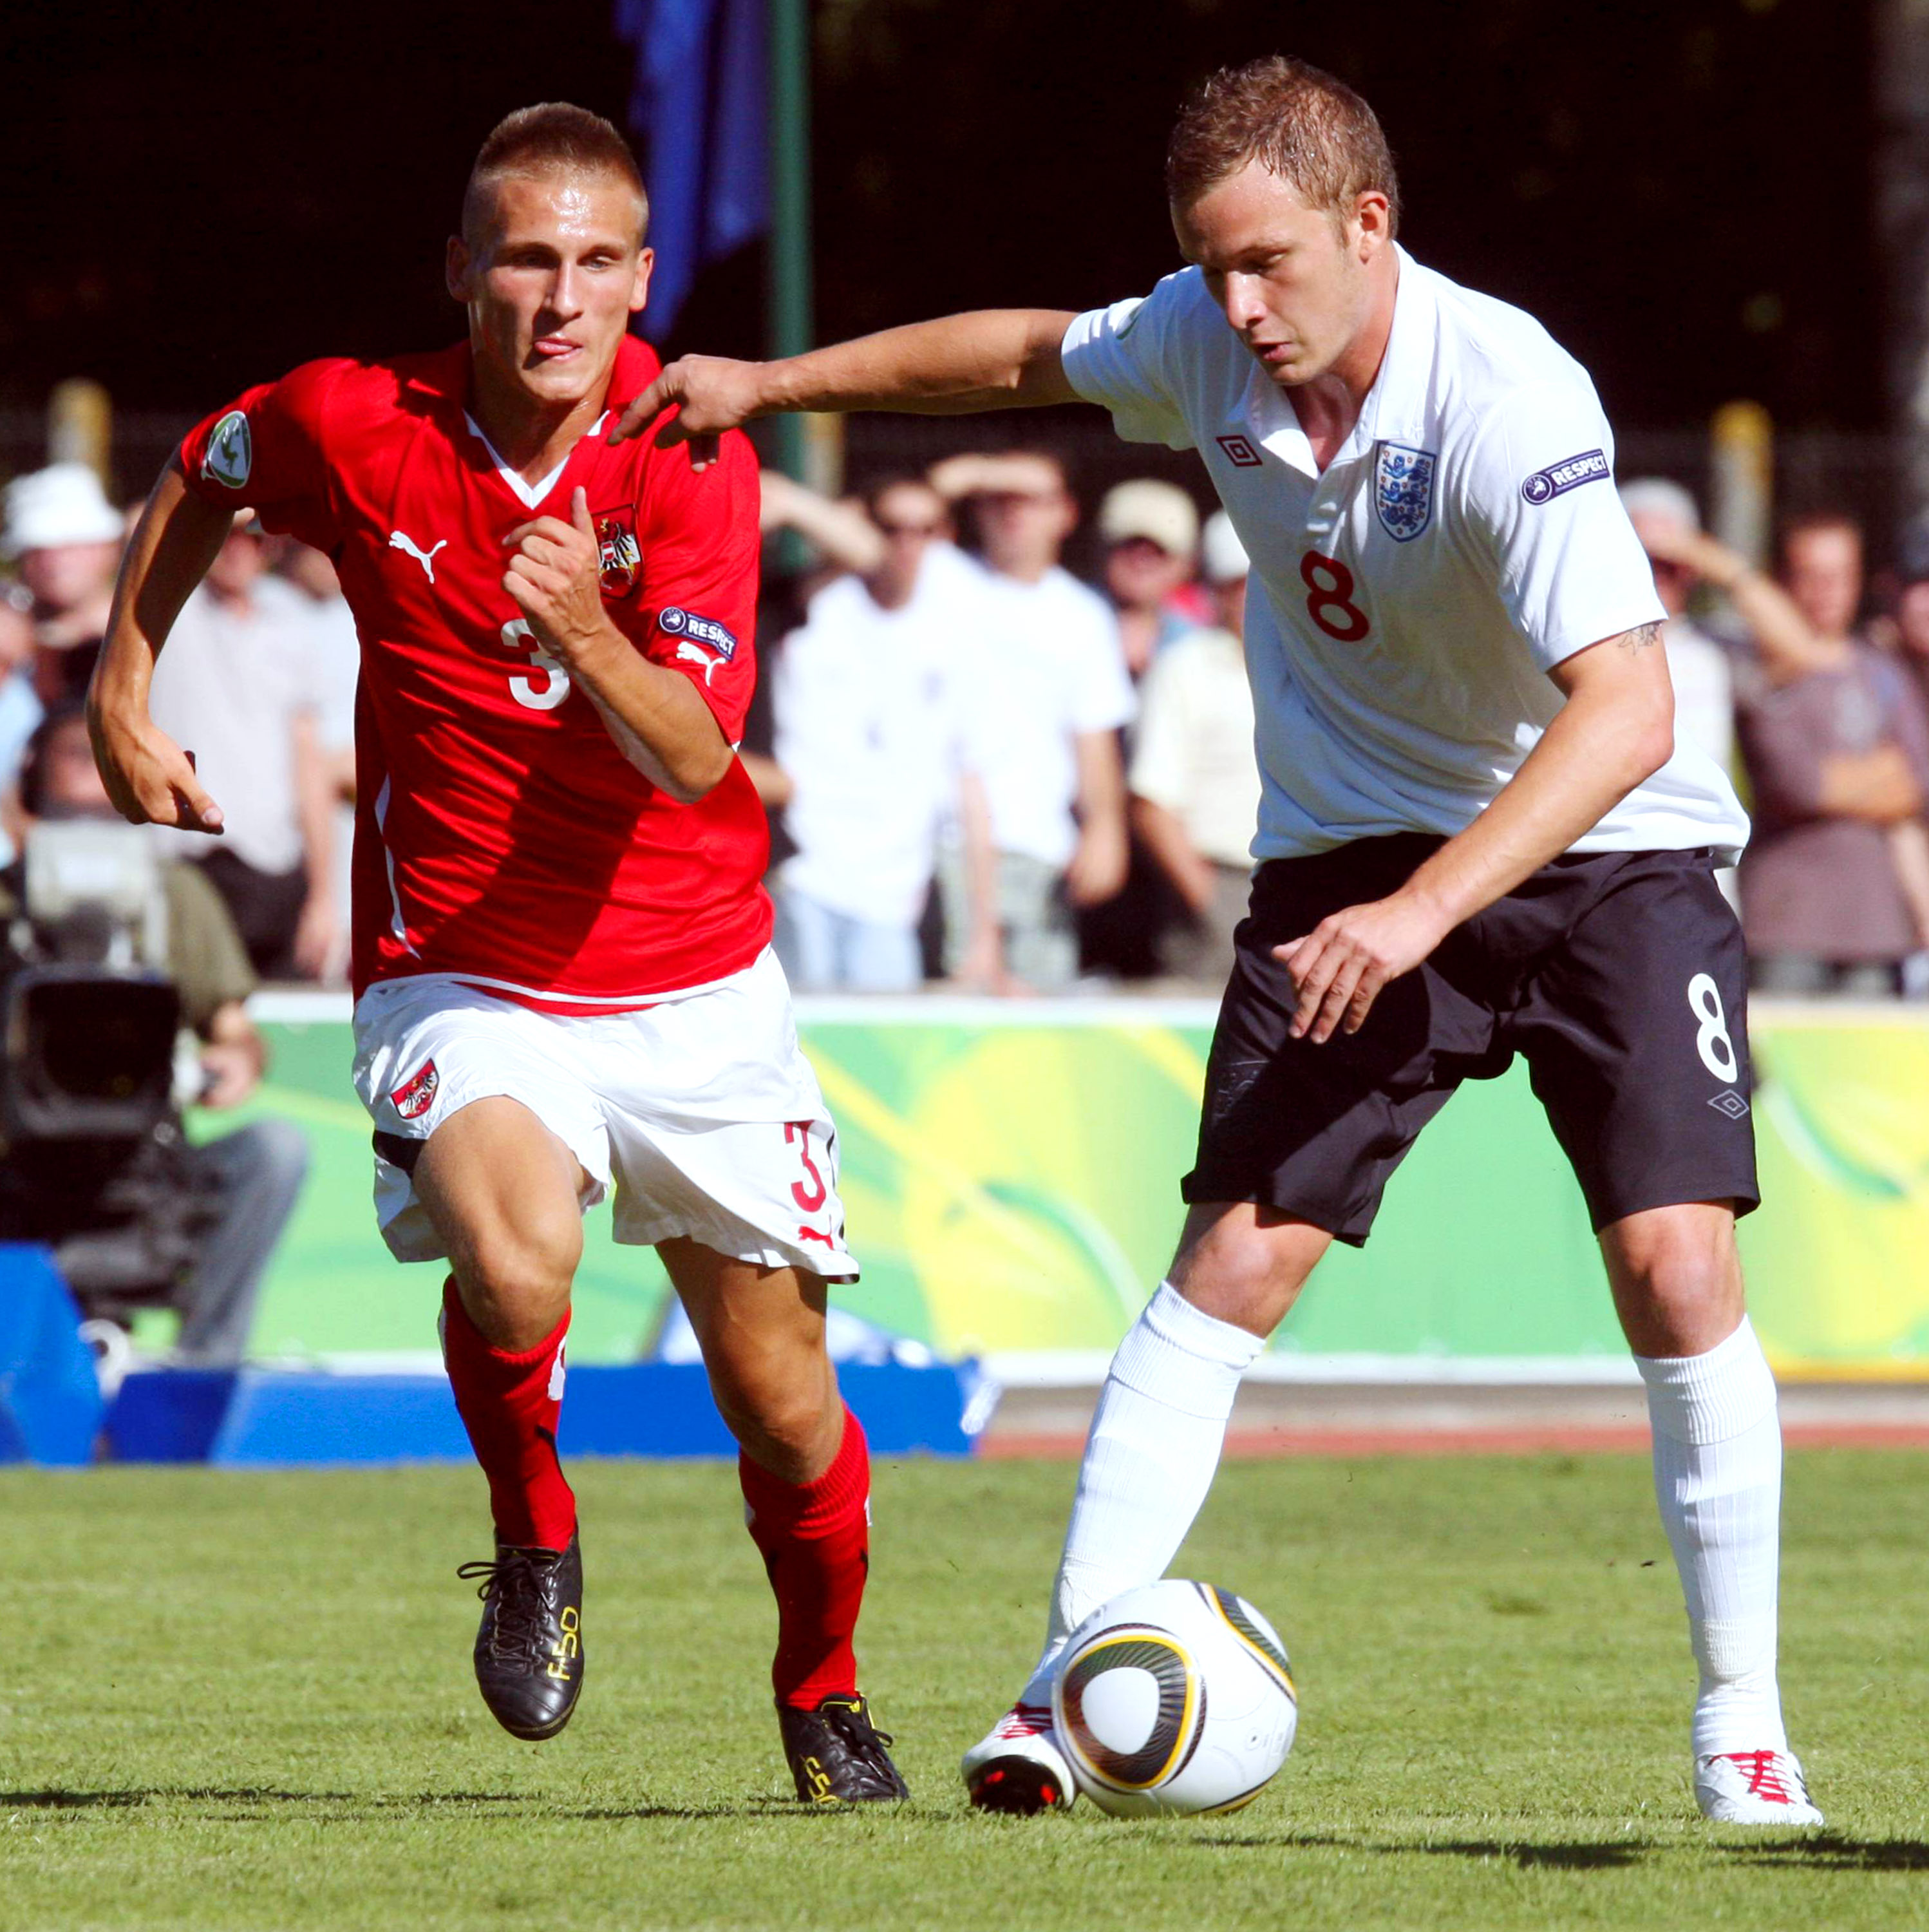 FLERS, FRANCE - JULY 18: Emir Dilaver of Austria and Dean Parrett of England in action during the UEFA European Under-19 Championship Final Tournament Group A match between Austria and England at Stade du Haze on July 18, 2010 in Flers, France.  (Photo by